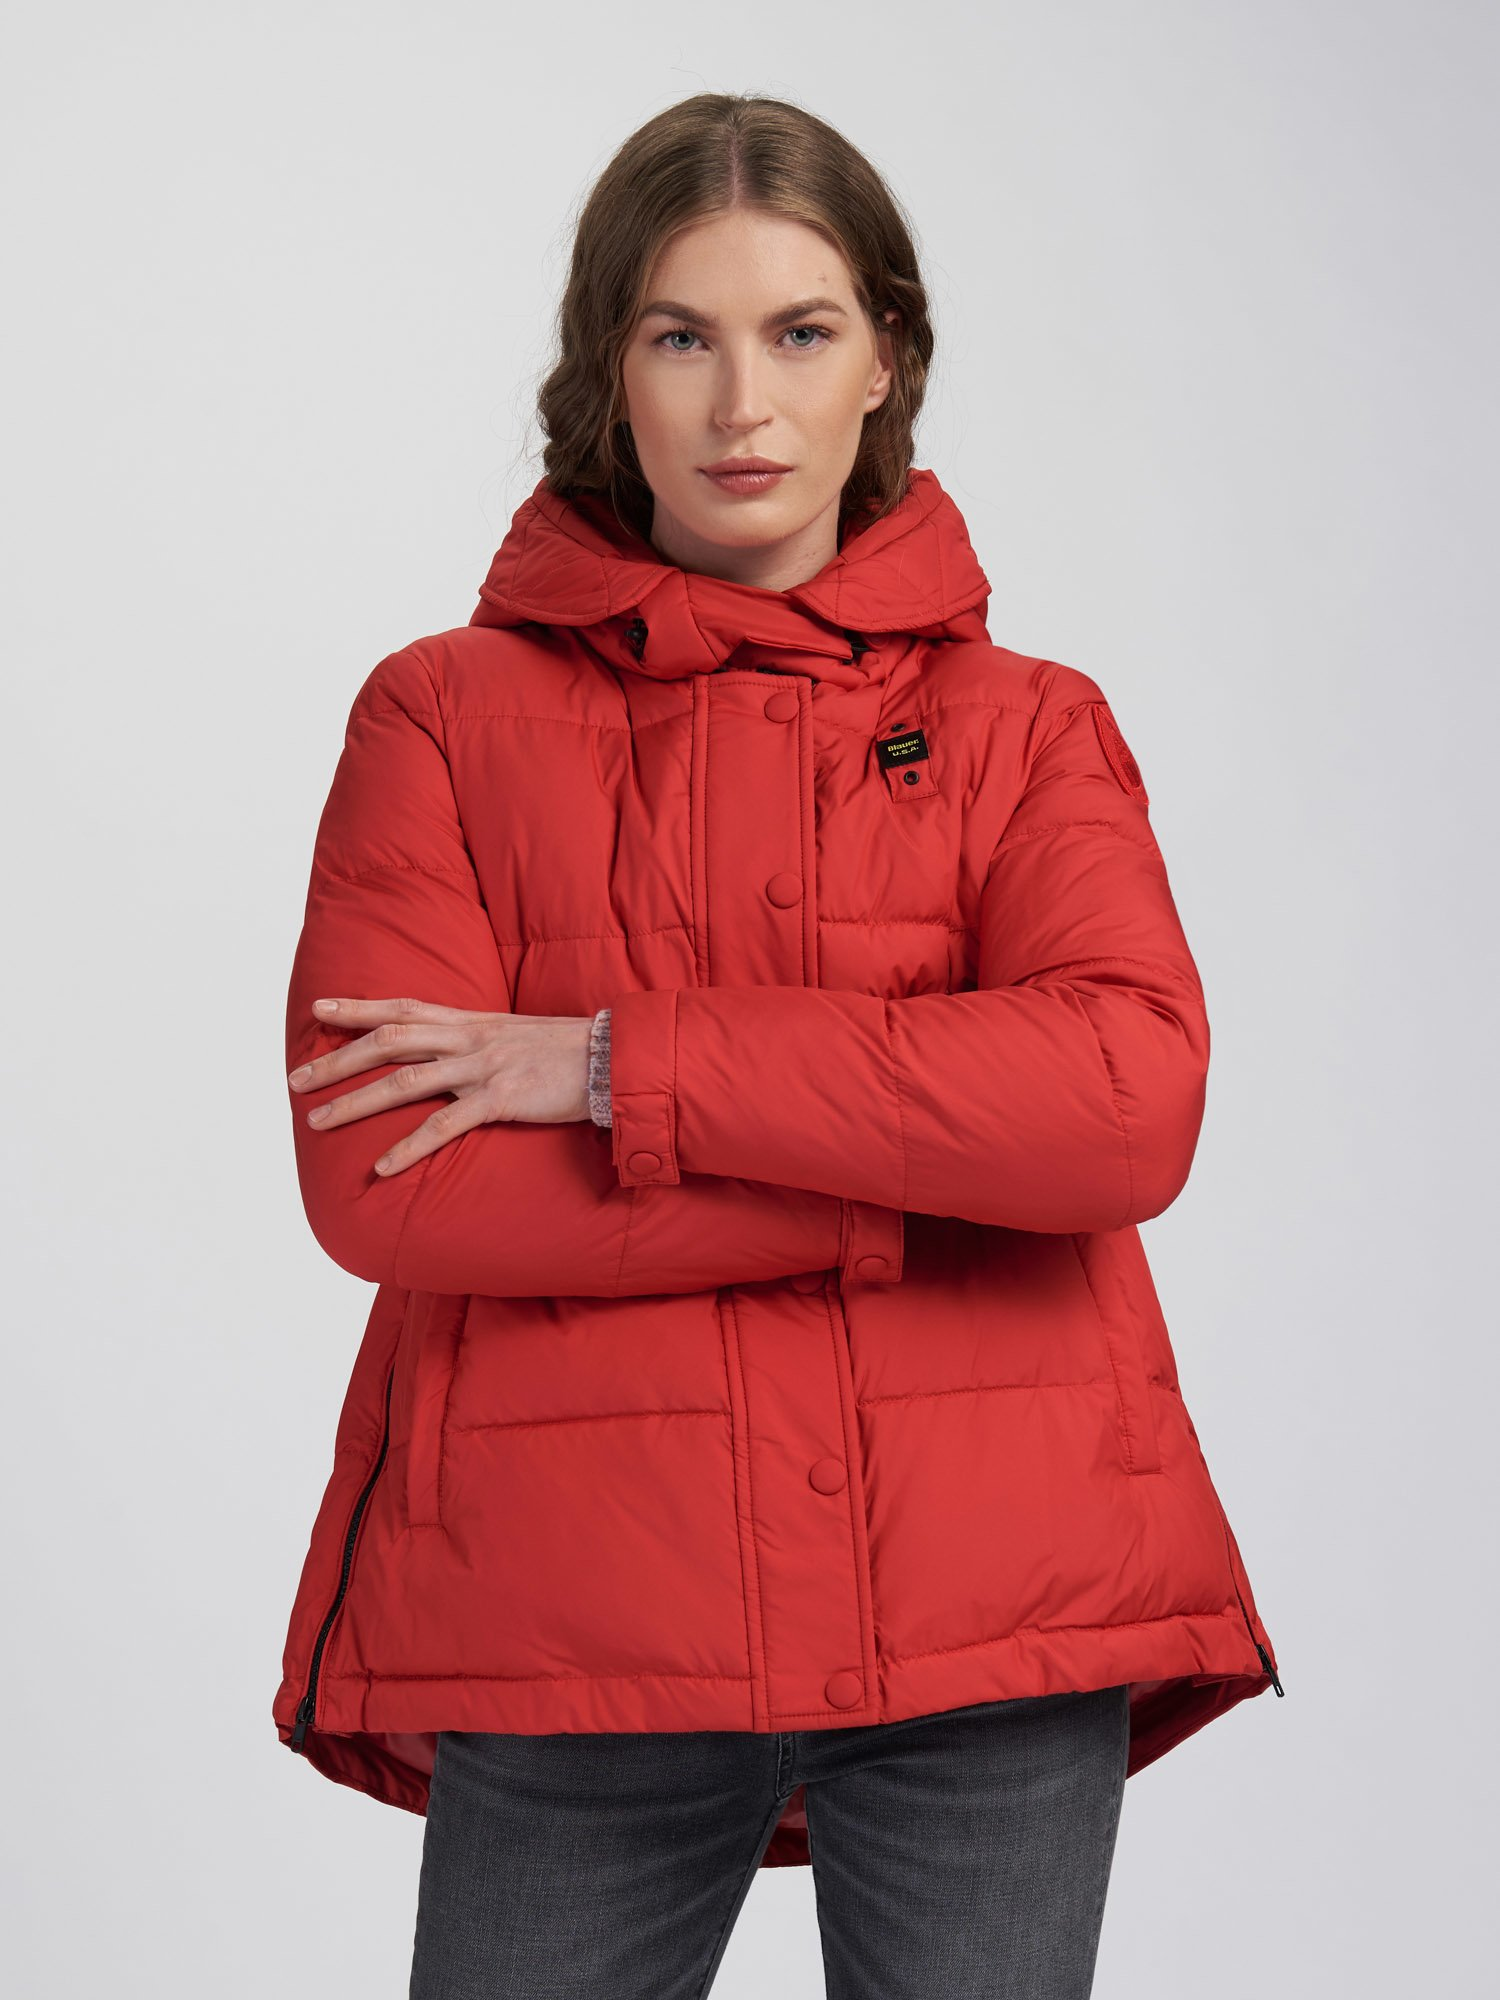 Blauer - STEPHANIE WOOL BLEND PADDED JACKET - Red Bloode - Blauer